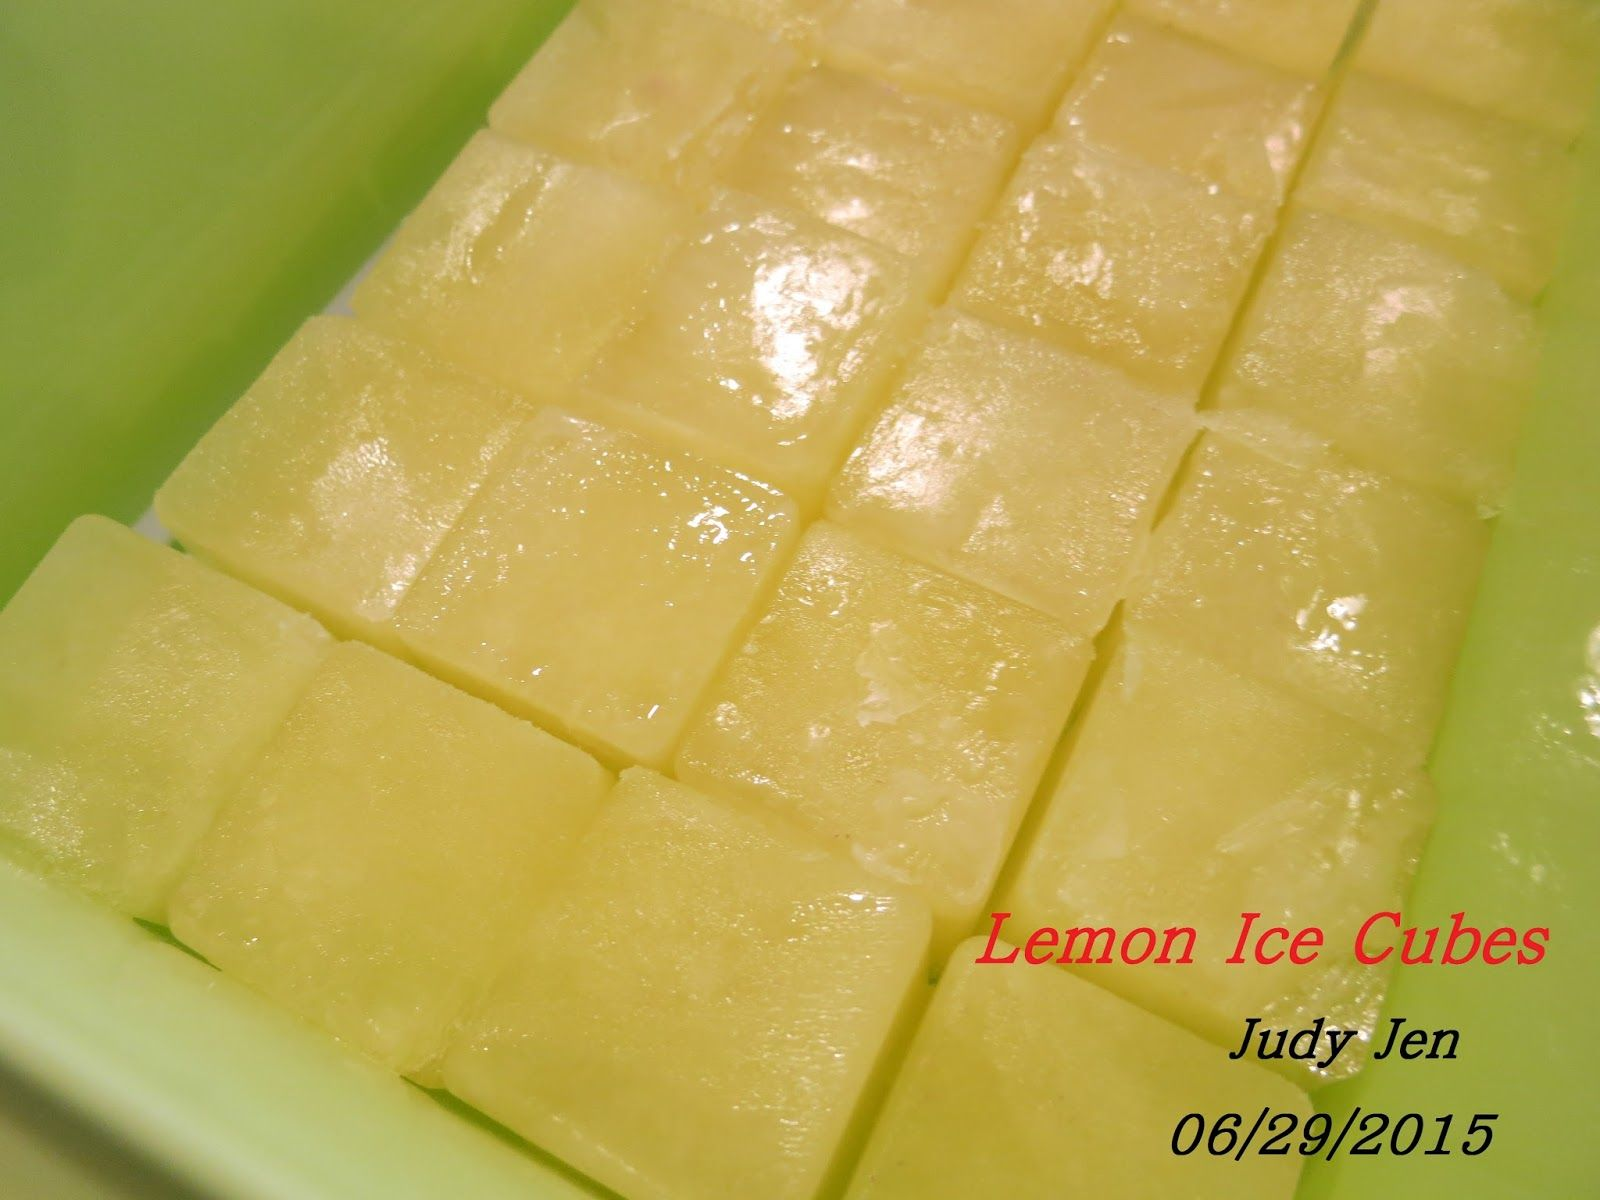 C.A.K.E.: 健康餐Healthy Meals檸檬冰塊迷迭香Lemon Ice Cube with Rosemary 06/29/2015